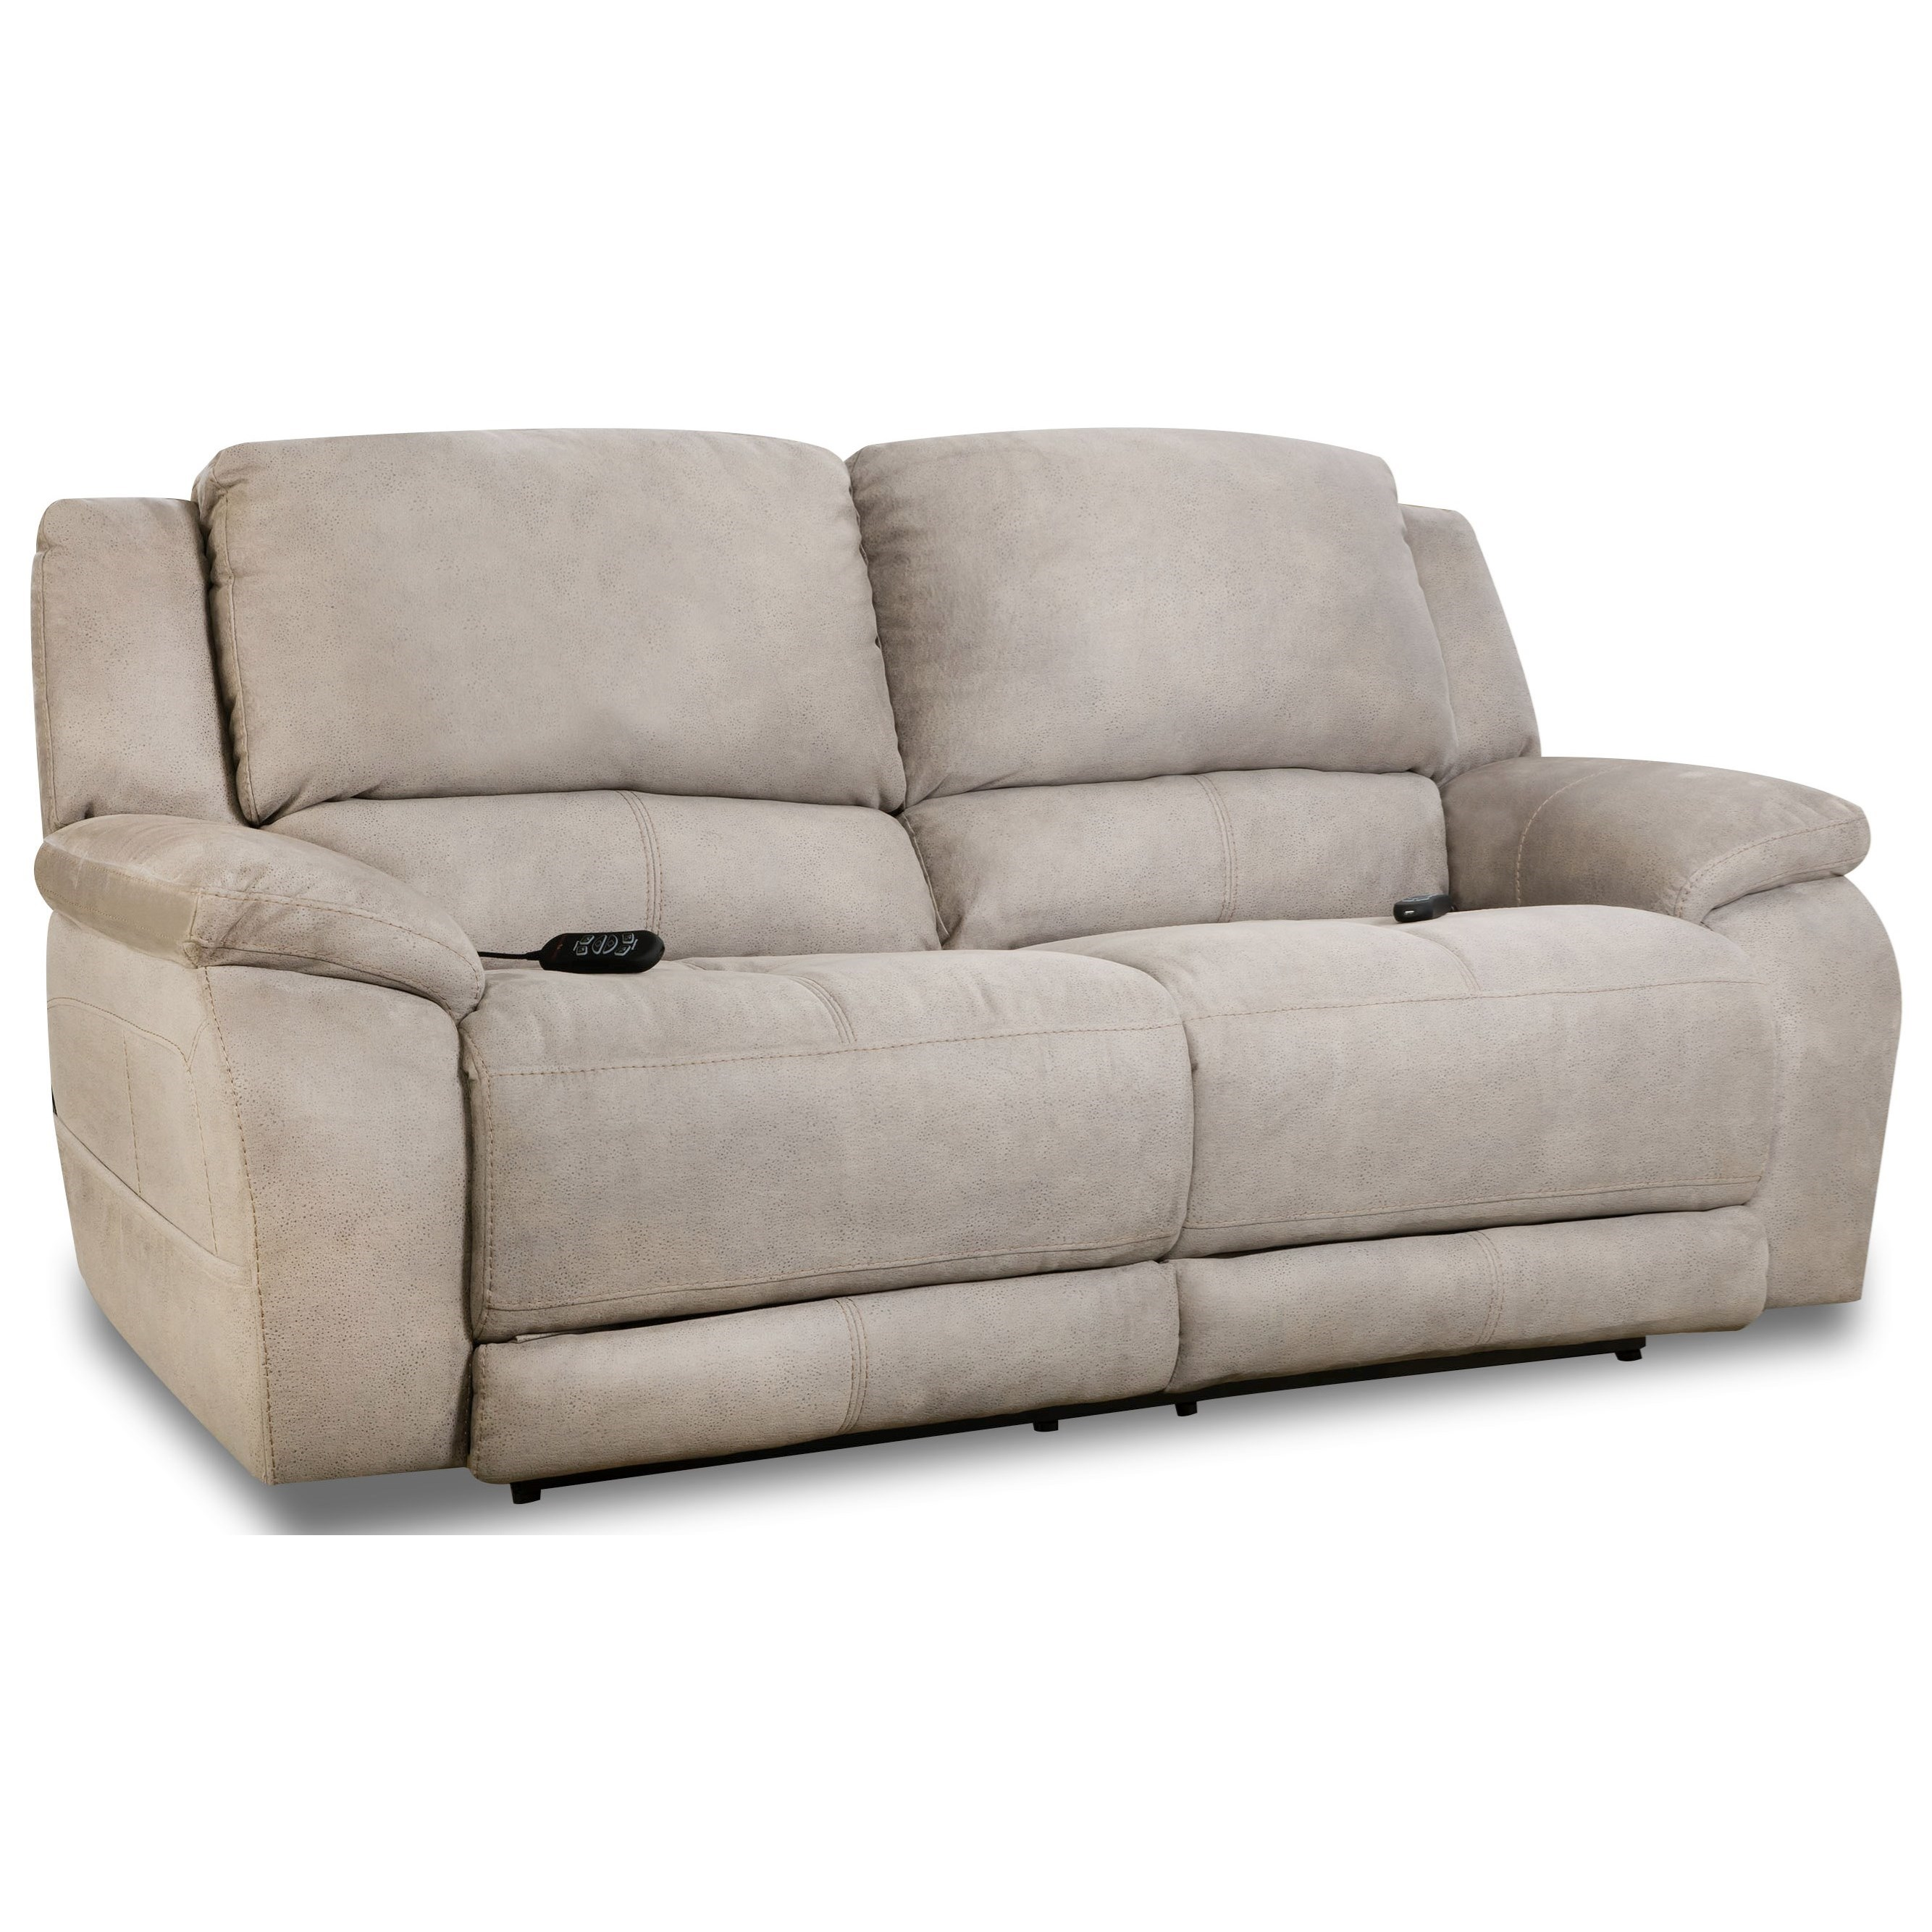 Explorer Double Reclining Sofa by HomeStretch at HomeWorld Furniture